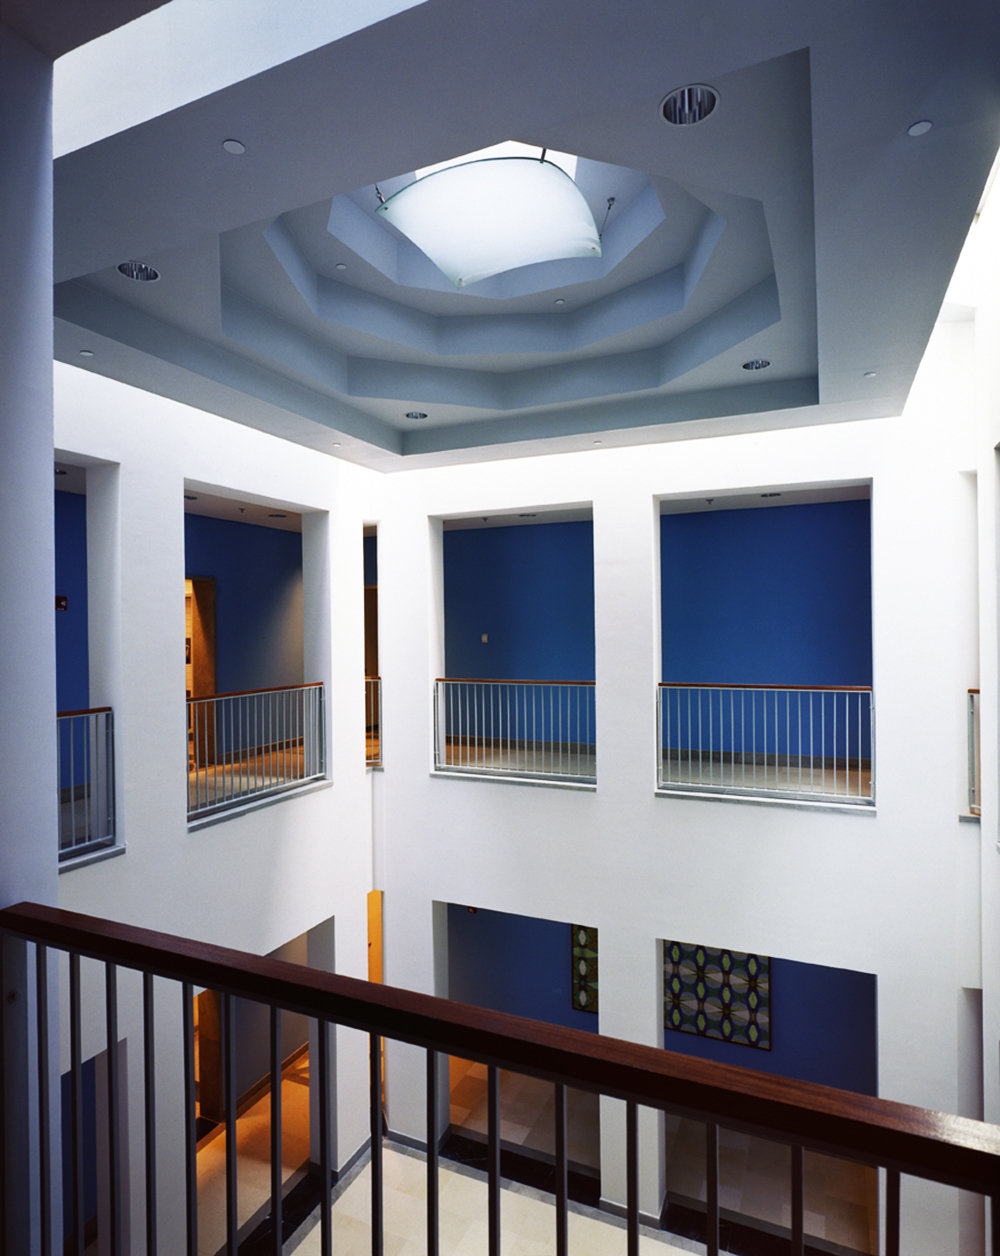 6 united states department of state the united states embassy tunisia interior entryway ceiling design and skylight feature 1400 xxx q85